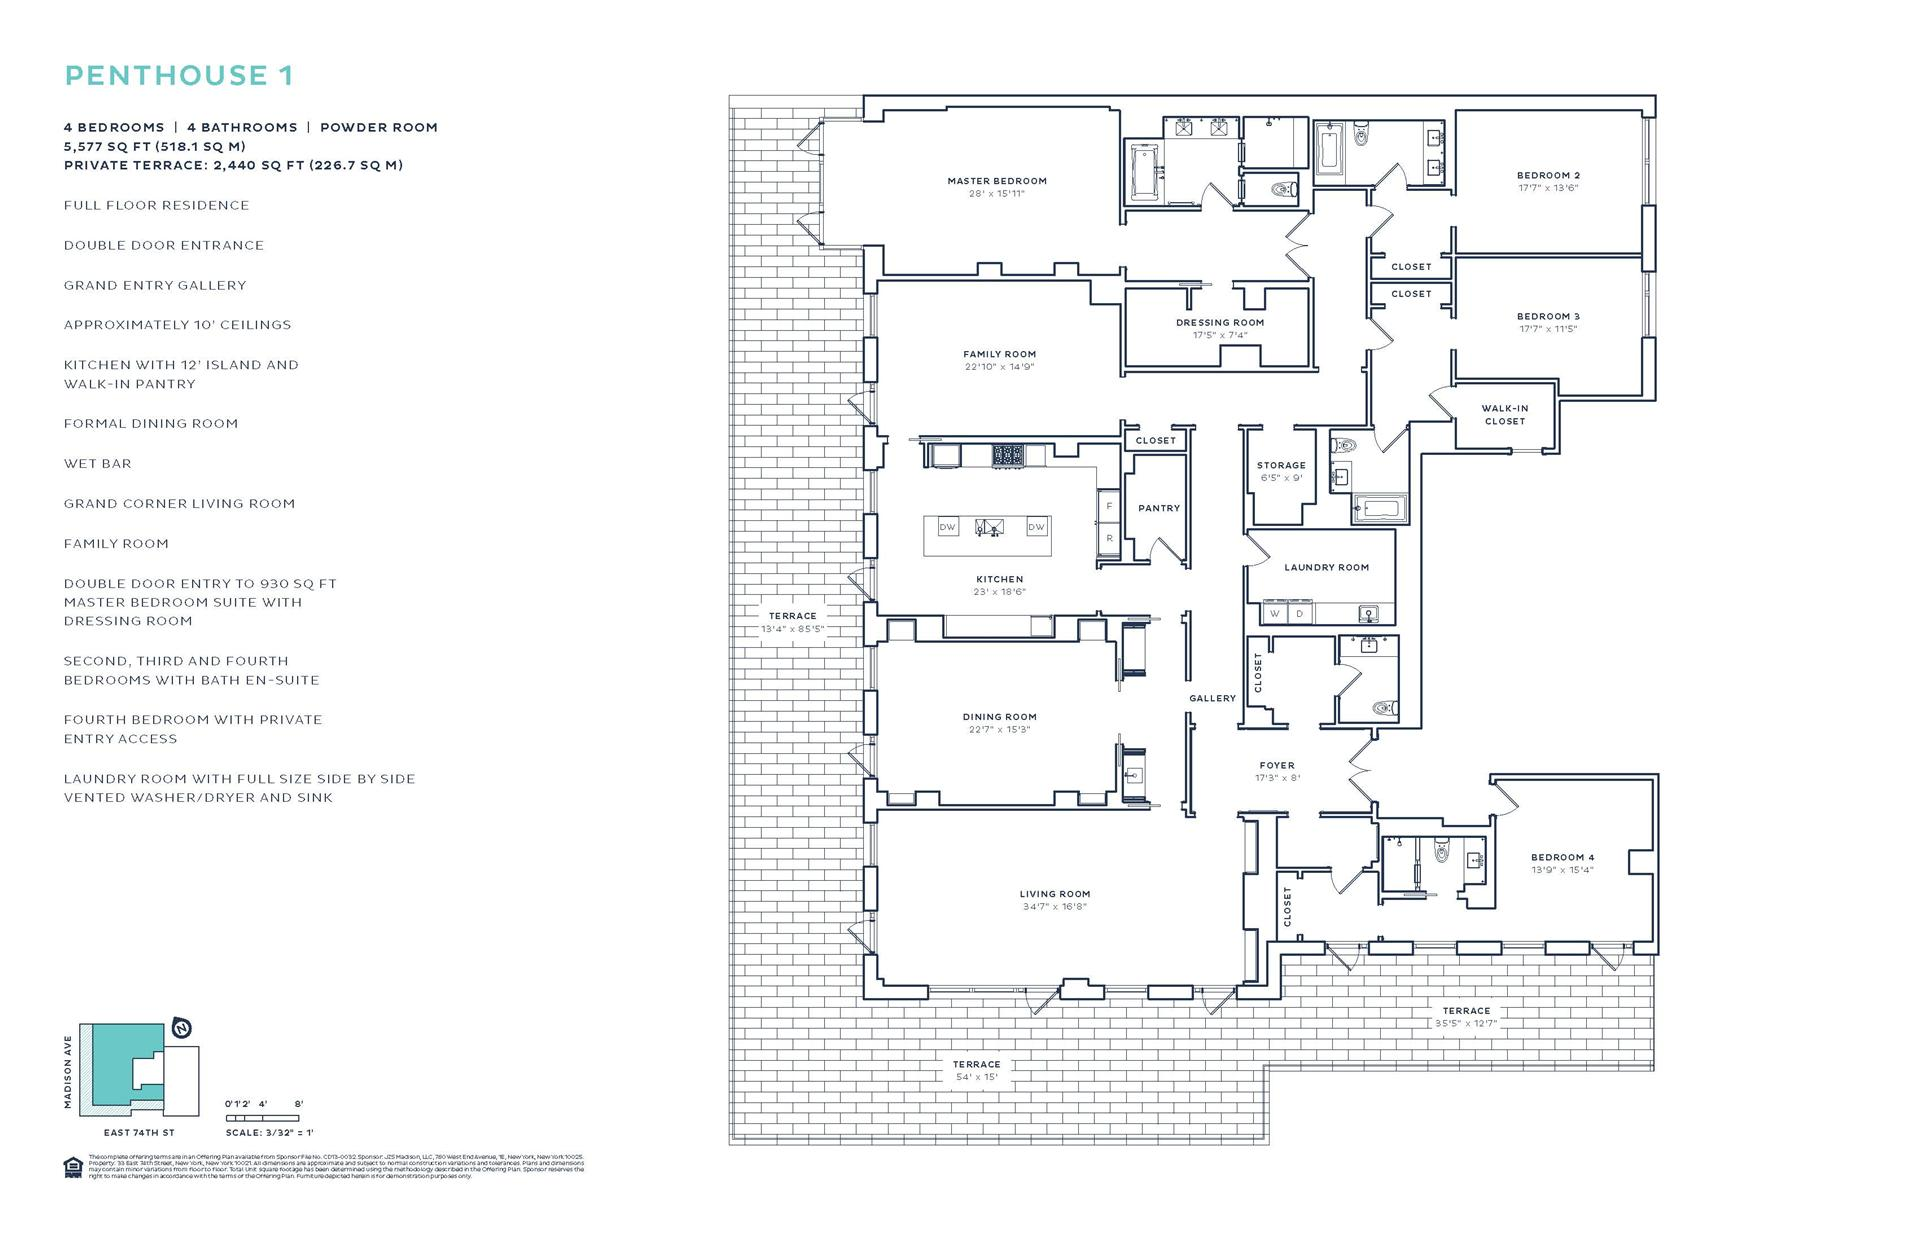 Floor plan of 33 East 74th Street, 33 East 74th St, PH1 - Upper East Side, New York